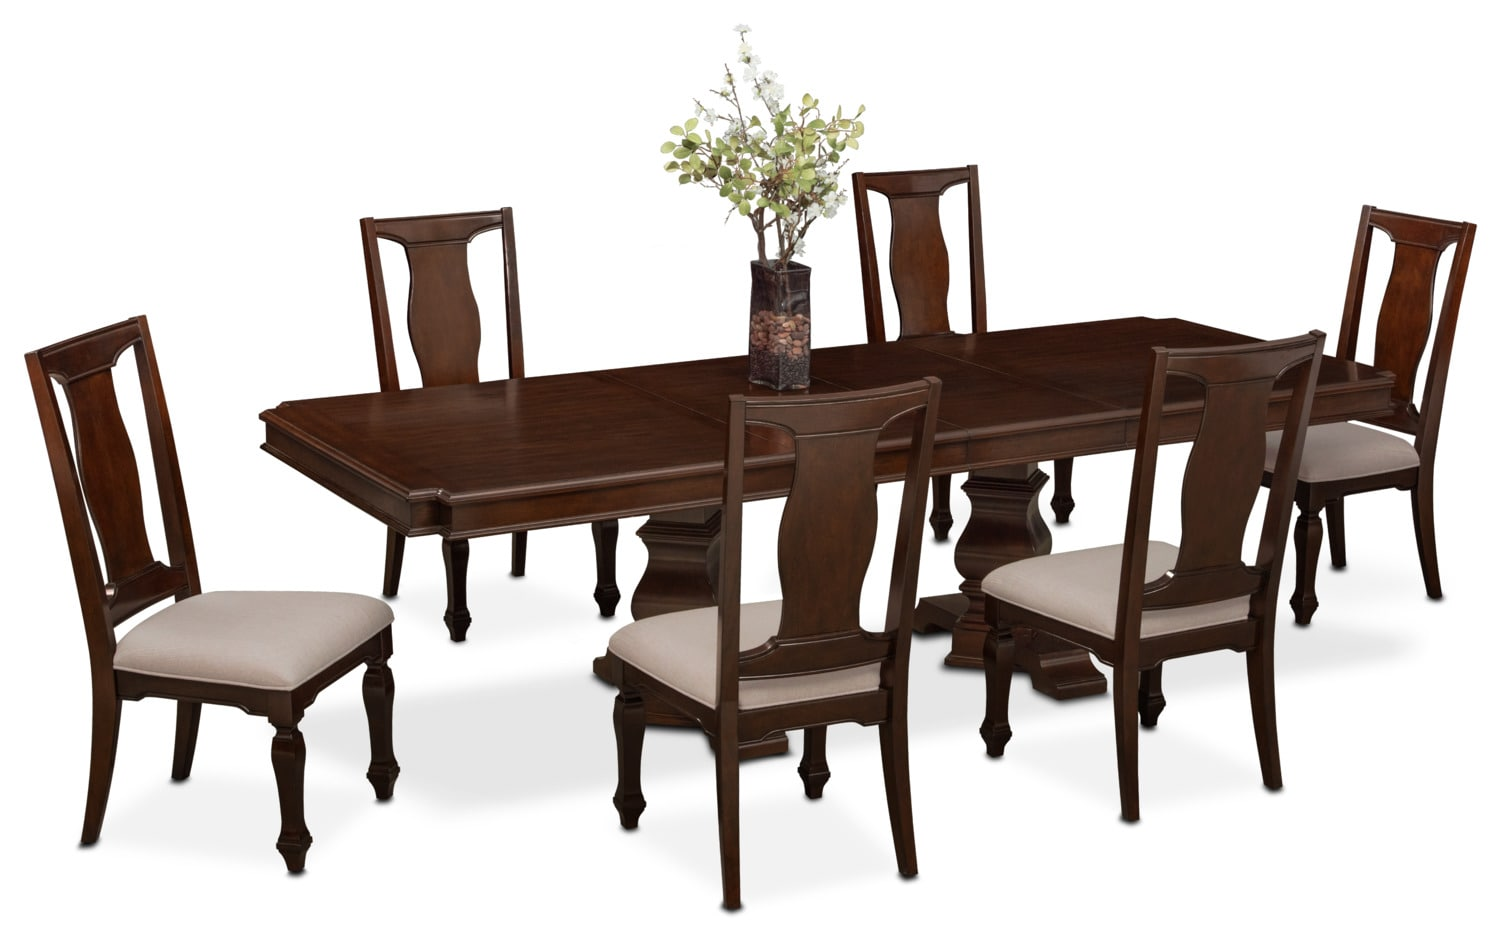 Vienna Dining Table and 6 Side Chairs - Merlot